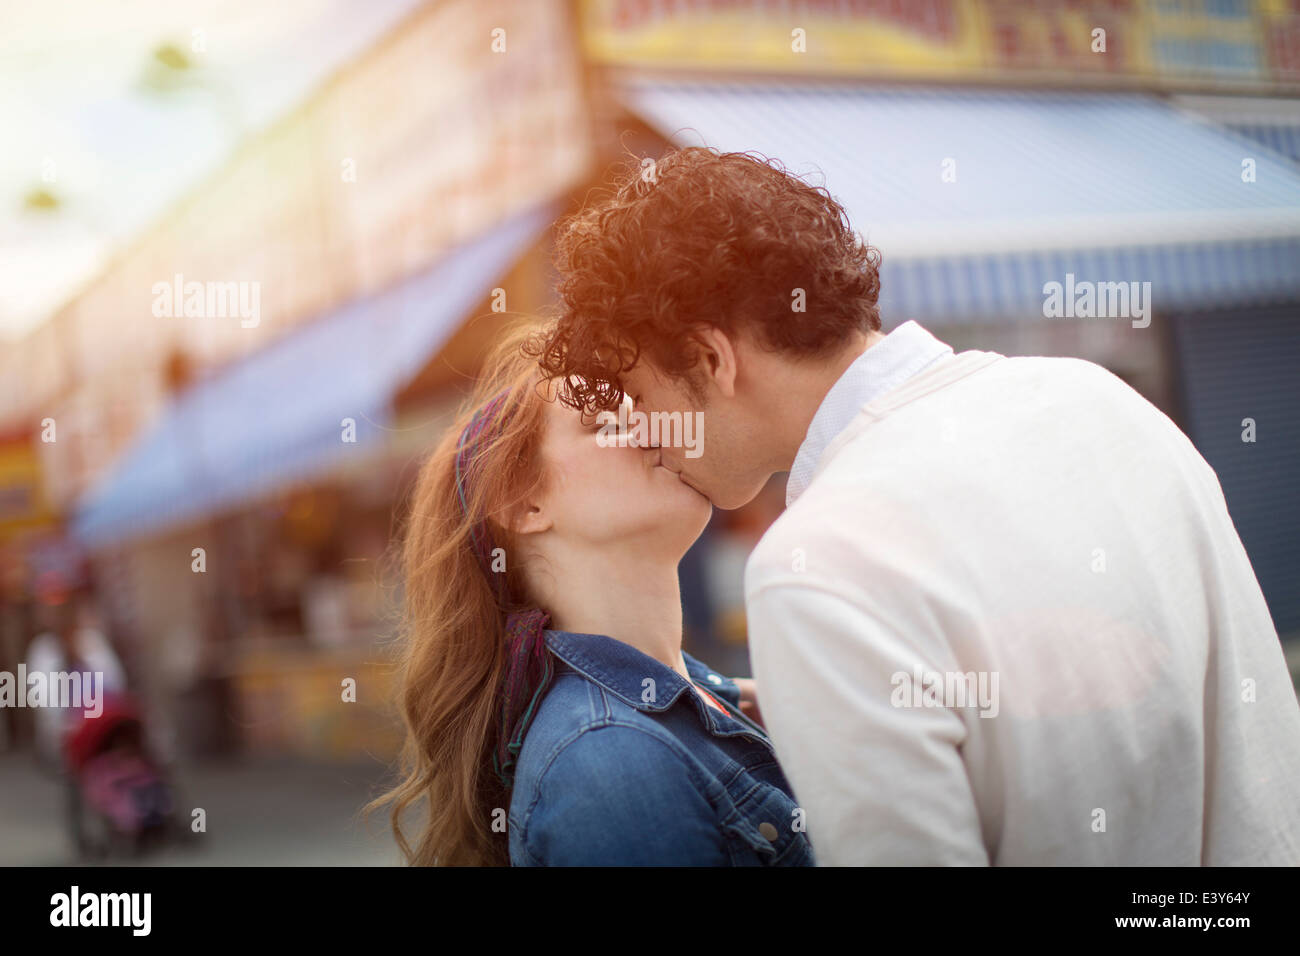 Romantic couple kissing at amusement park Photo Stock